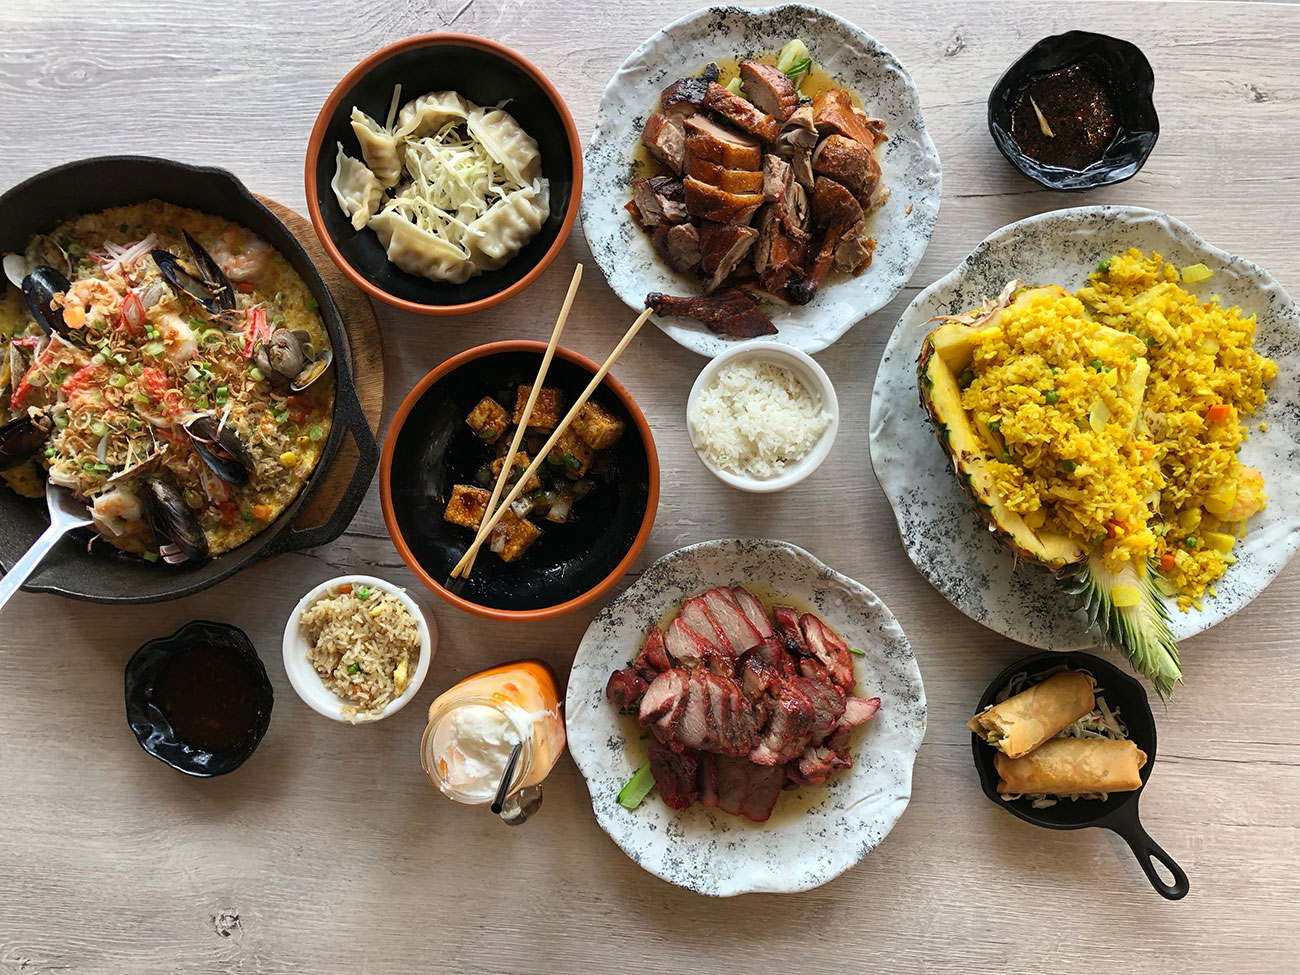 New restaurant from former Pisces owners drawing steady crowds with authentic Hong Kong cuisine